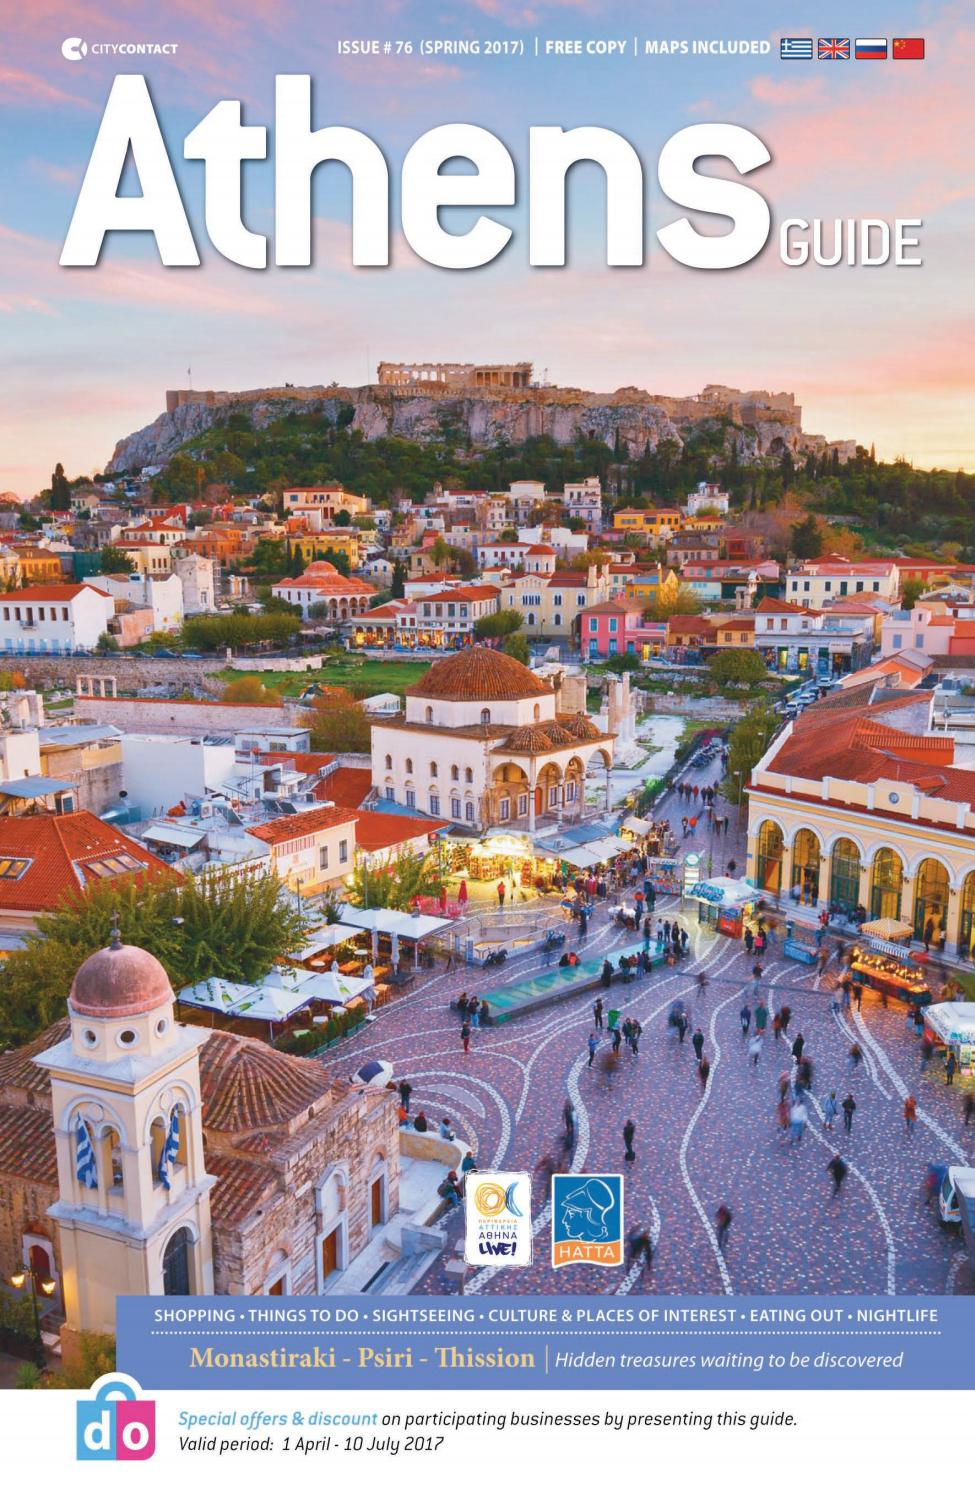 30ddf07388 Athens Guide - Spring 2017 by City Contact - issuu